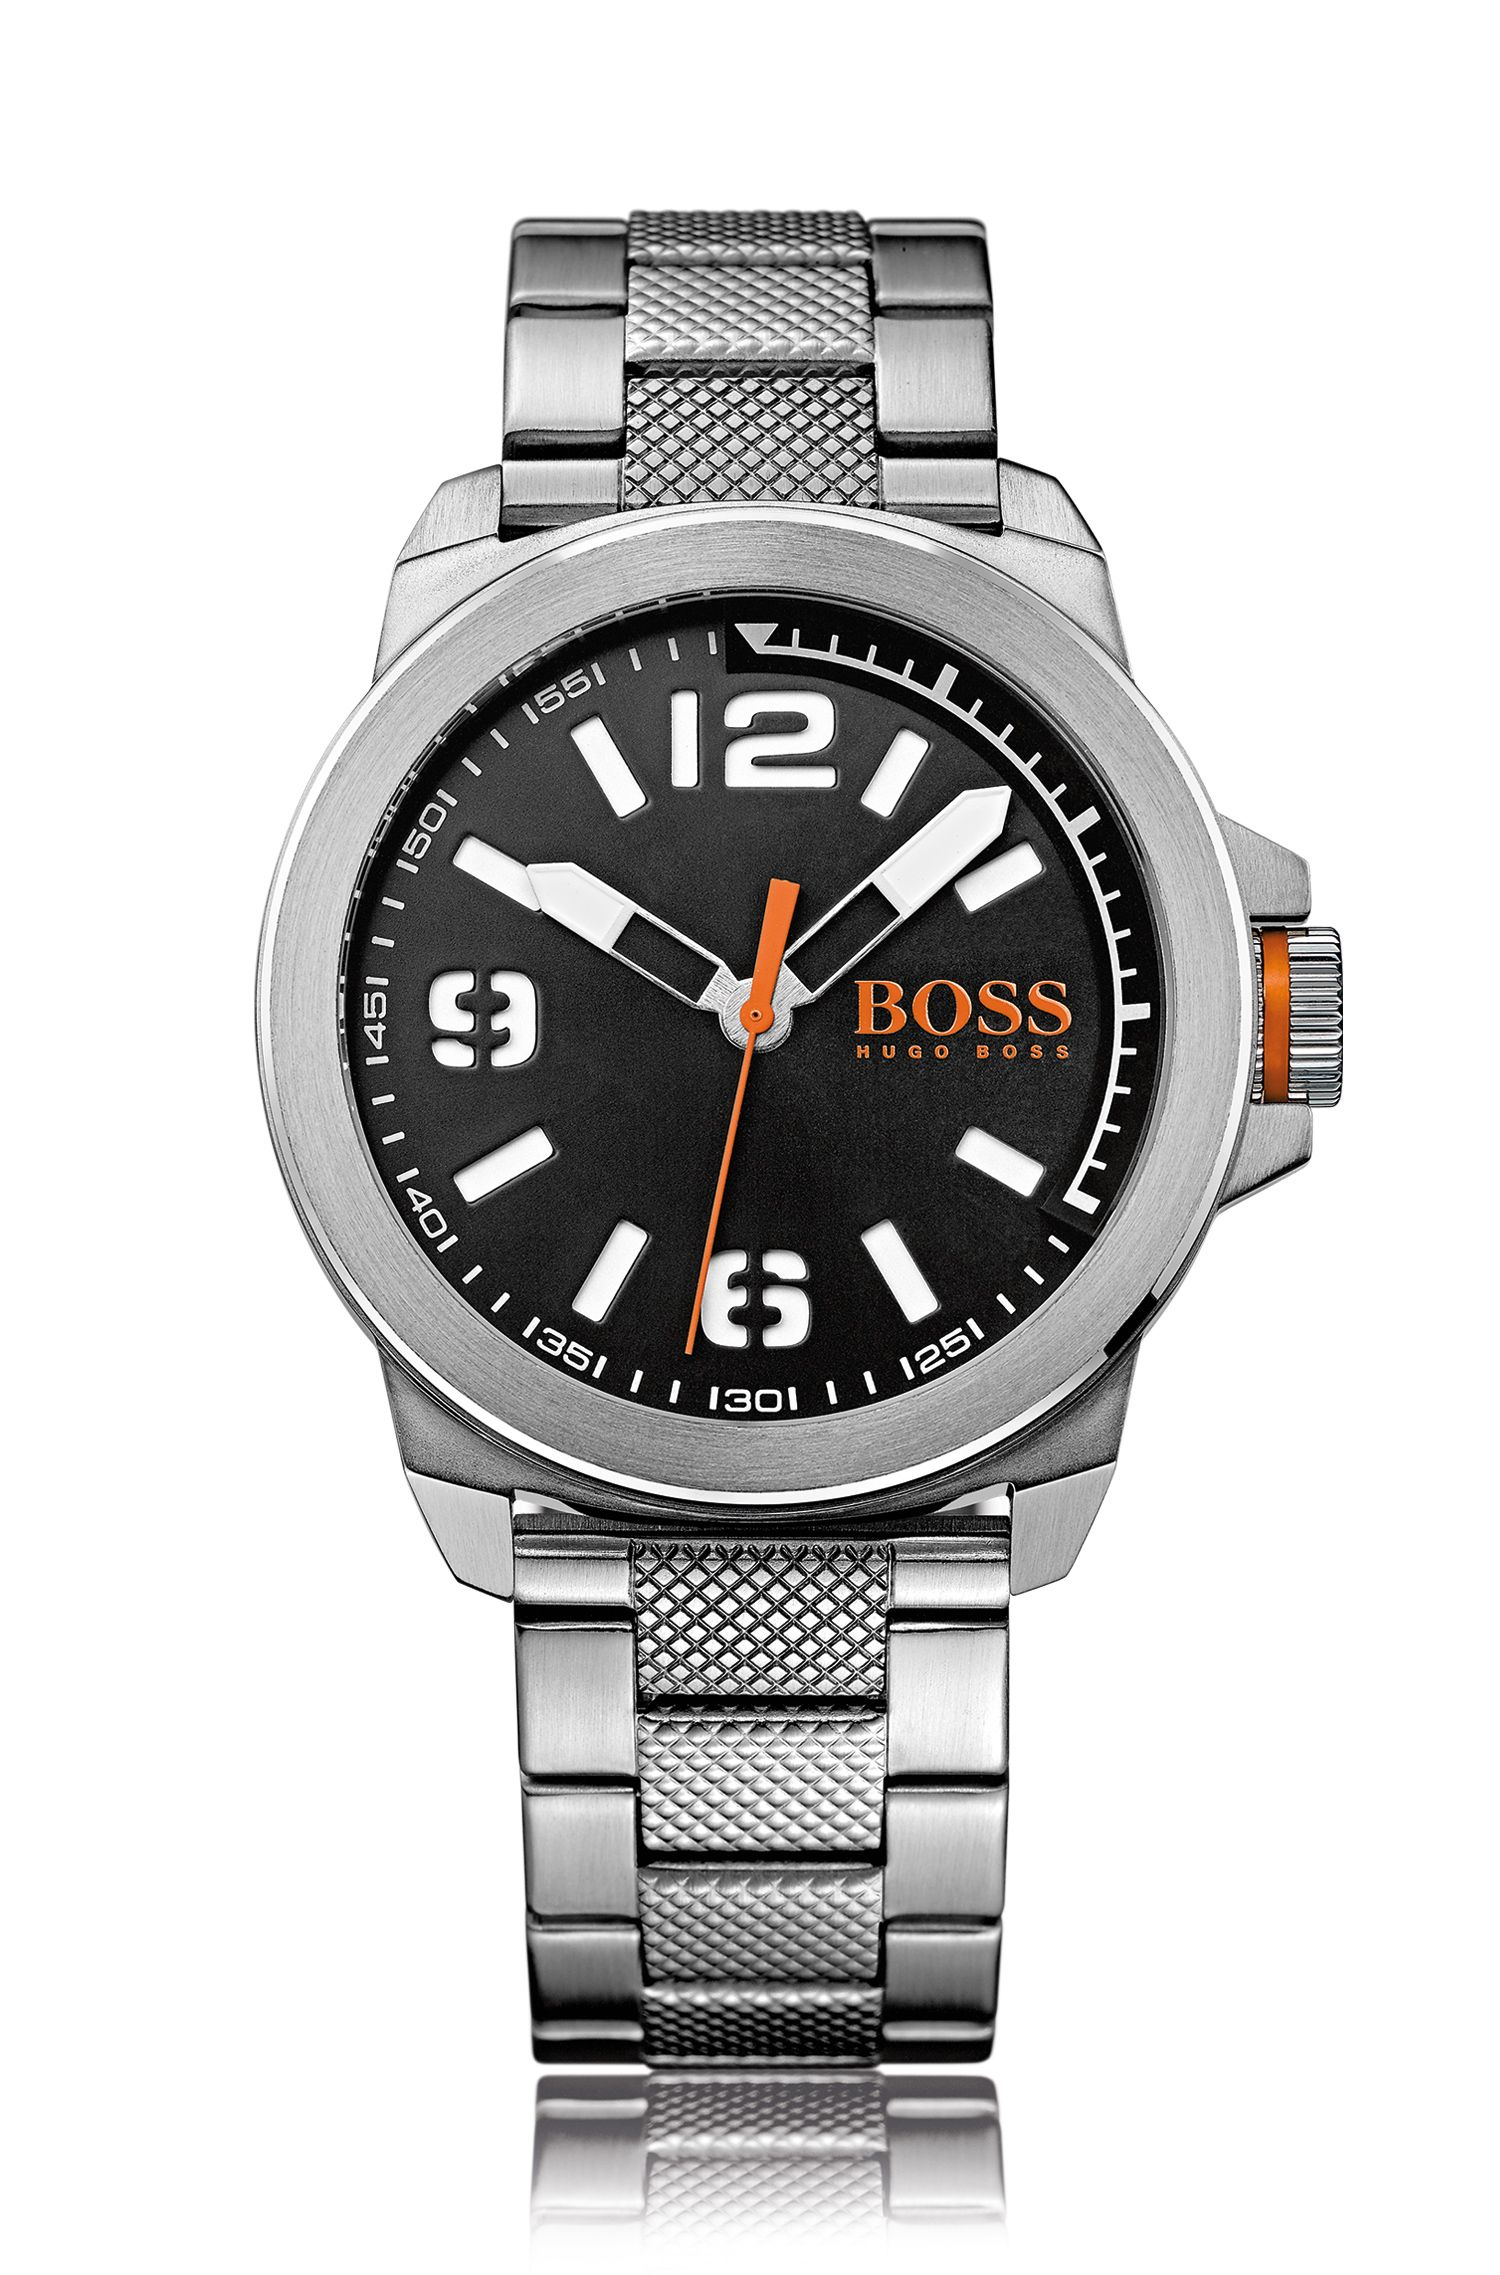 Three-hand watch with stainless steel bracelet